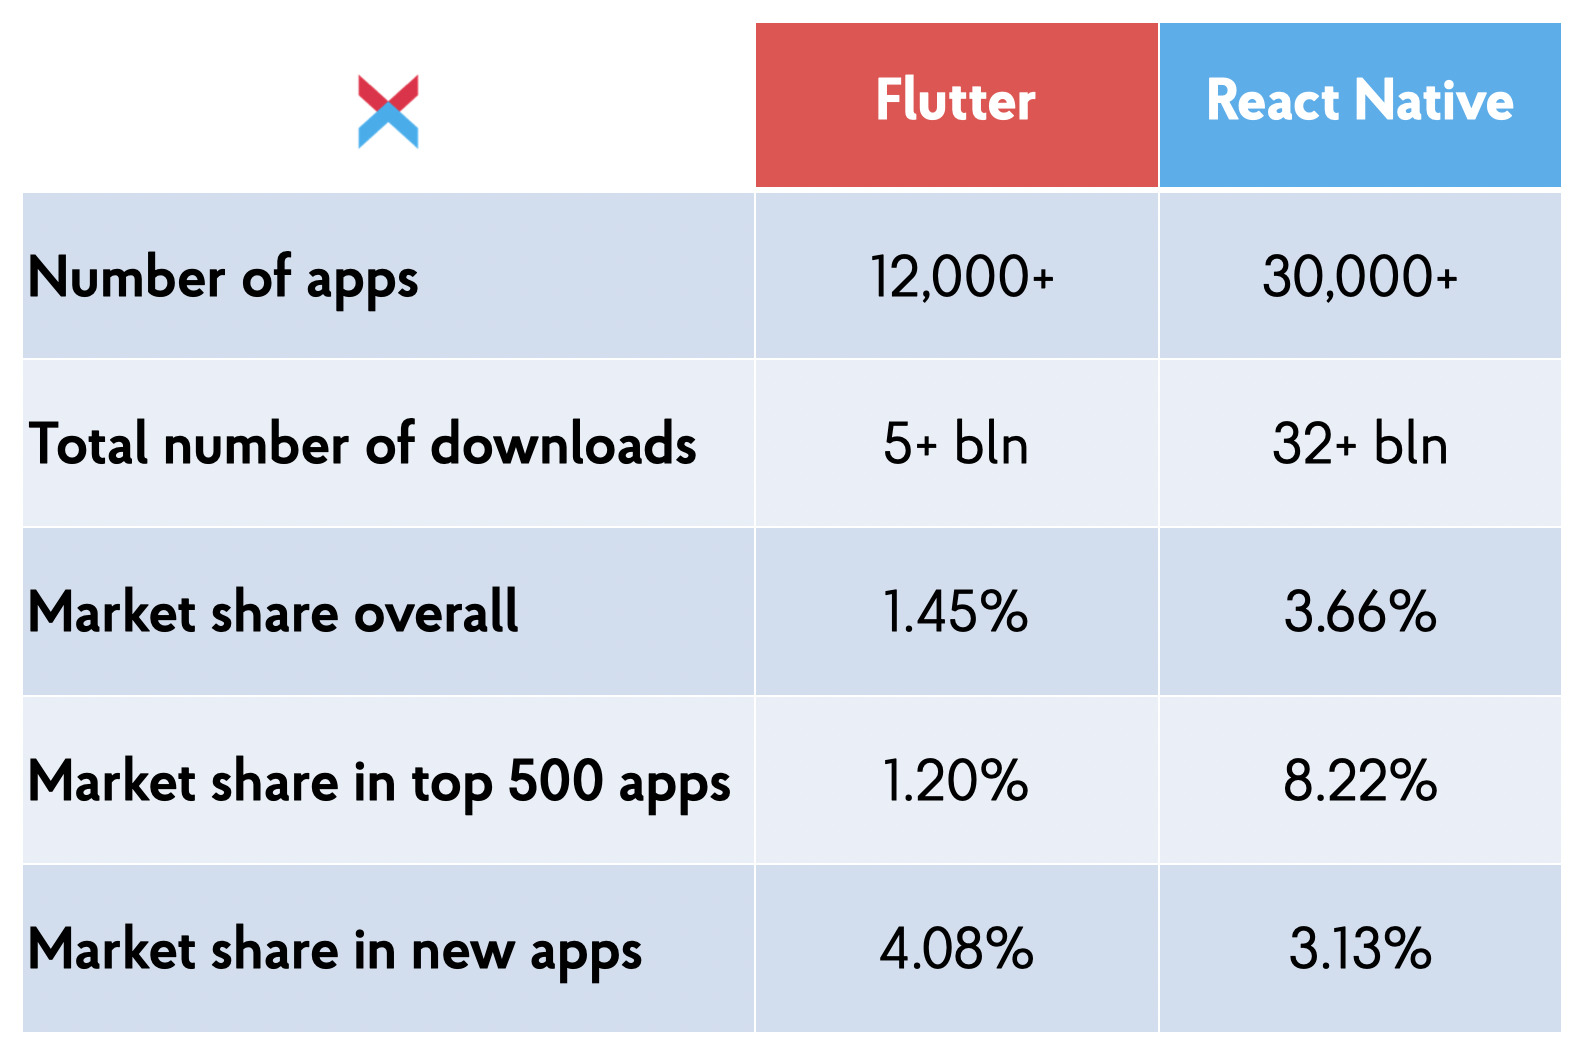 Flutter and React Native Adoption